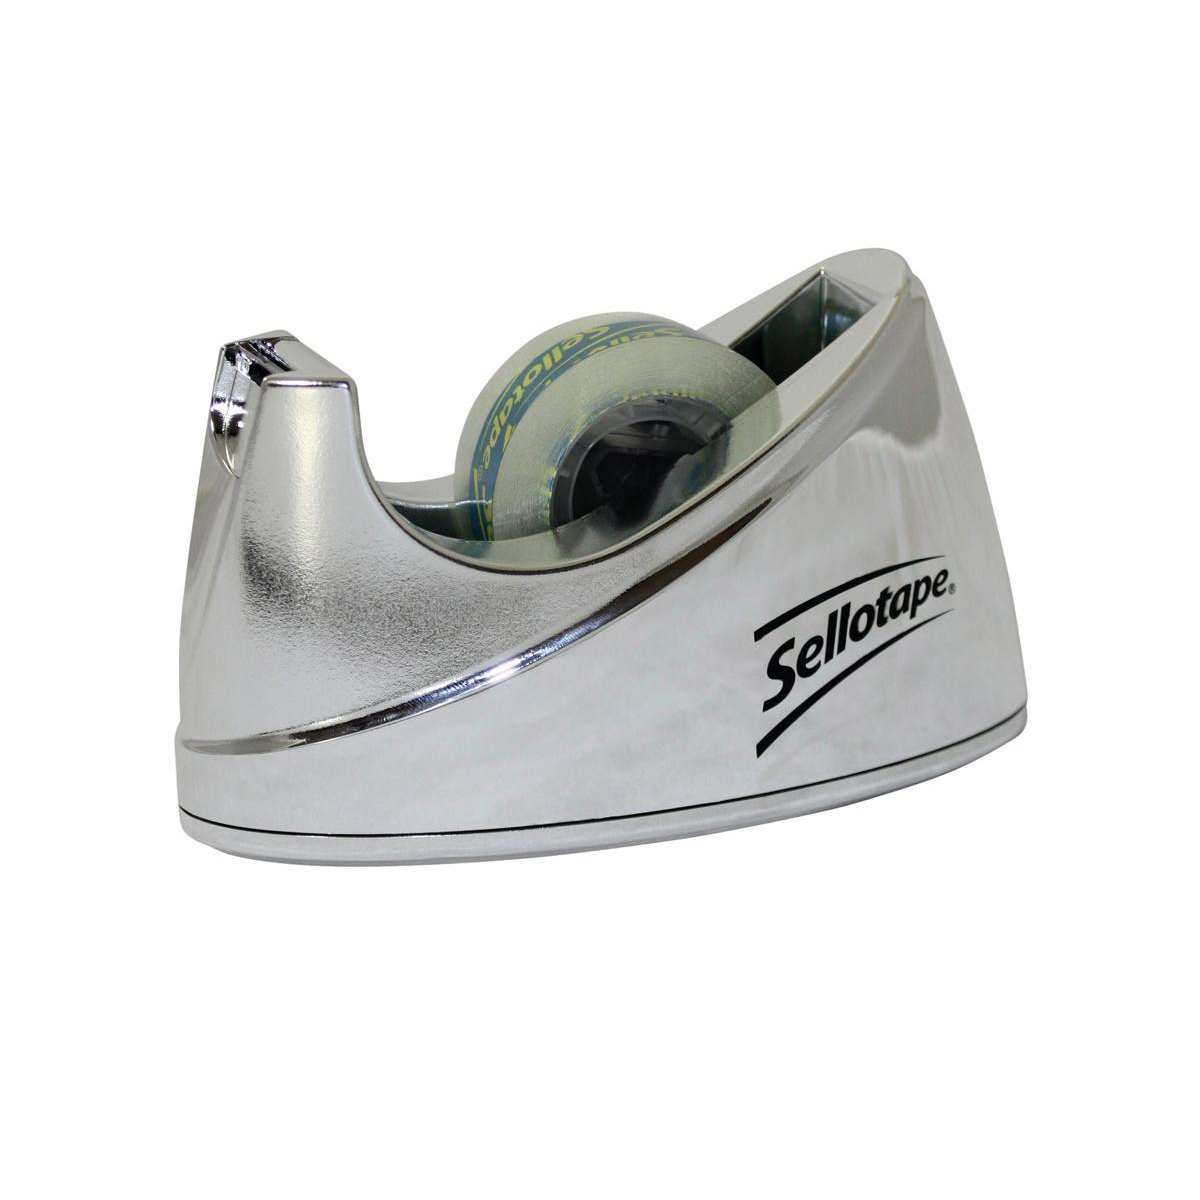 Sellotape Tape Dispenser Small Desktop Non-slip Roll Capacity 19mm Width 33m Length Chrome Ref 4529